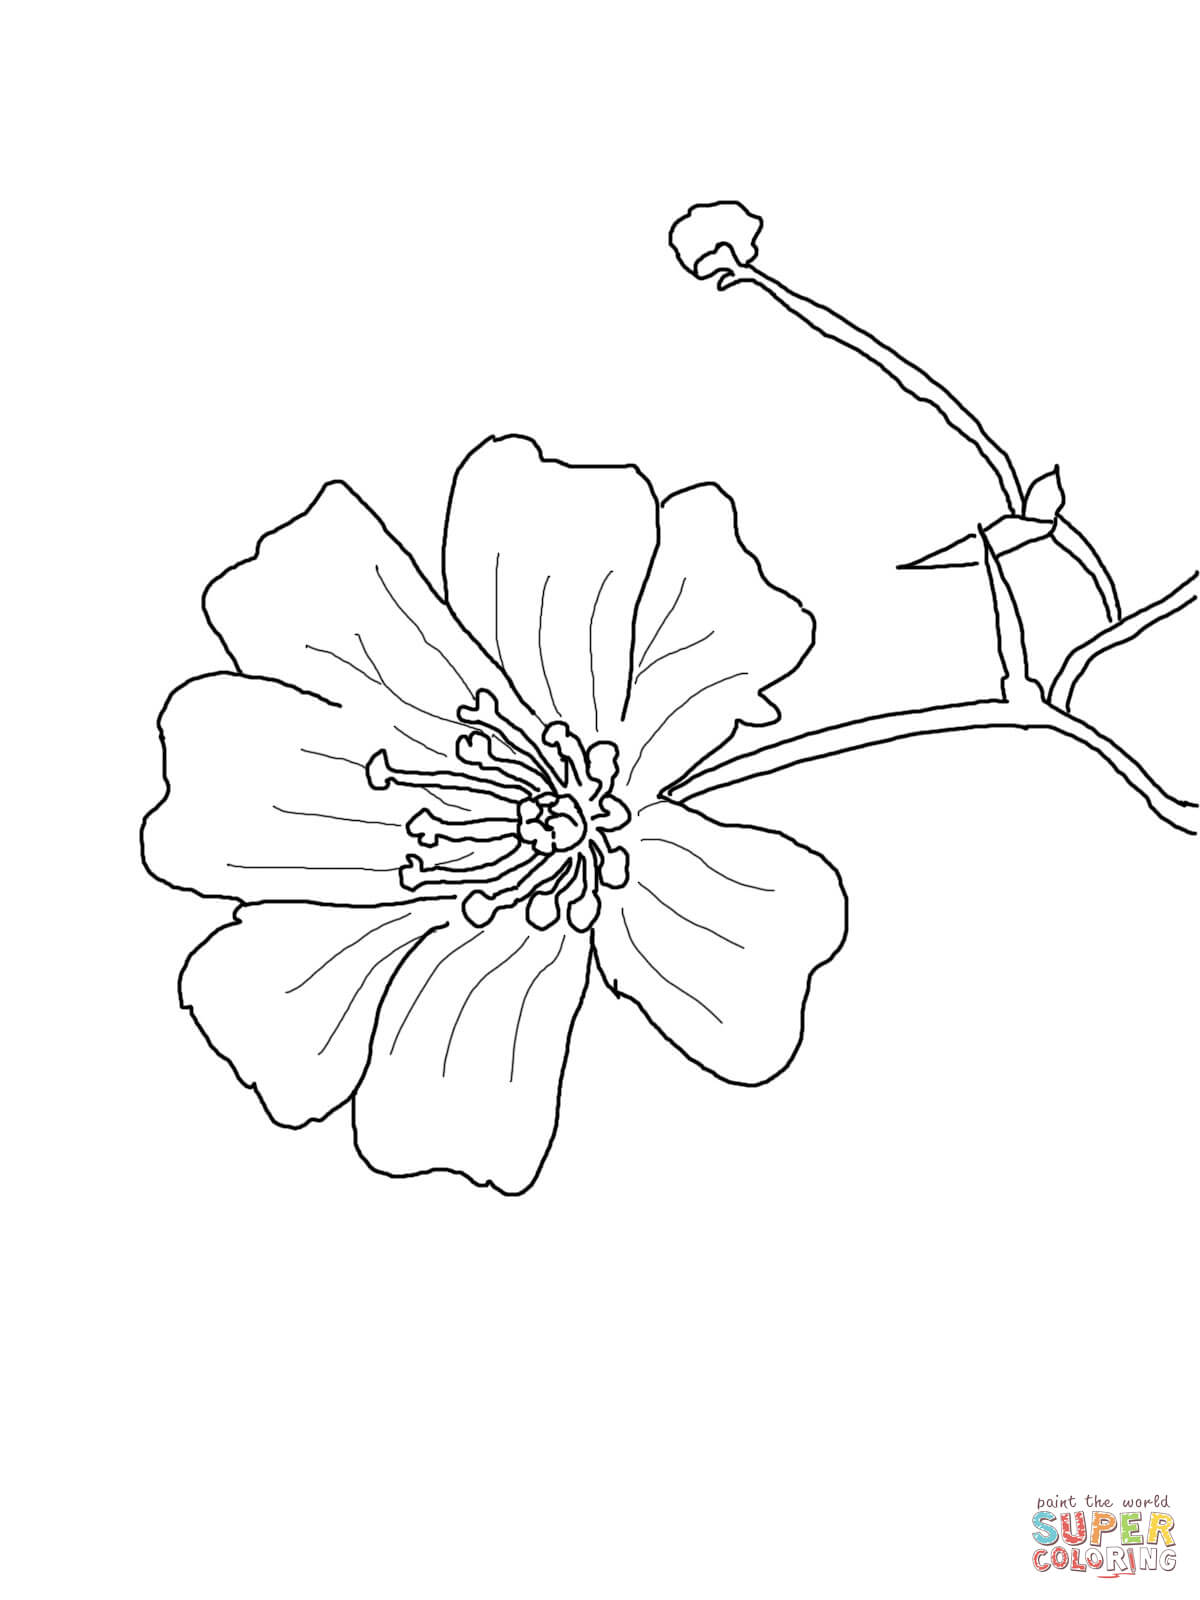 Bluebonnet Drawing at GetDrawings.com | Free for personal use ...